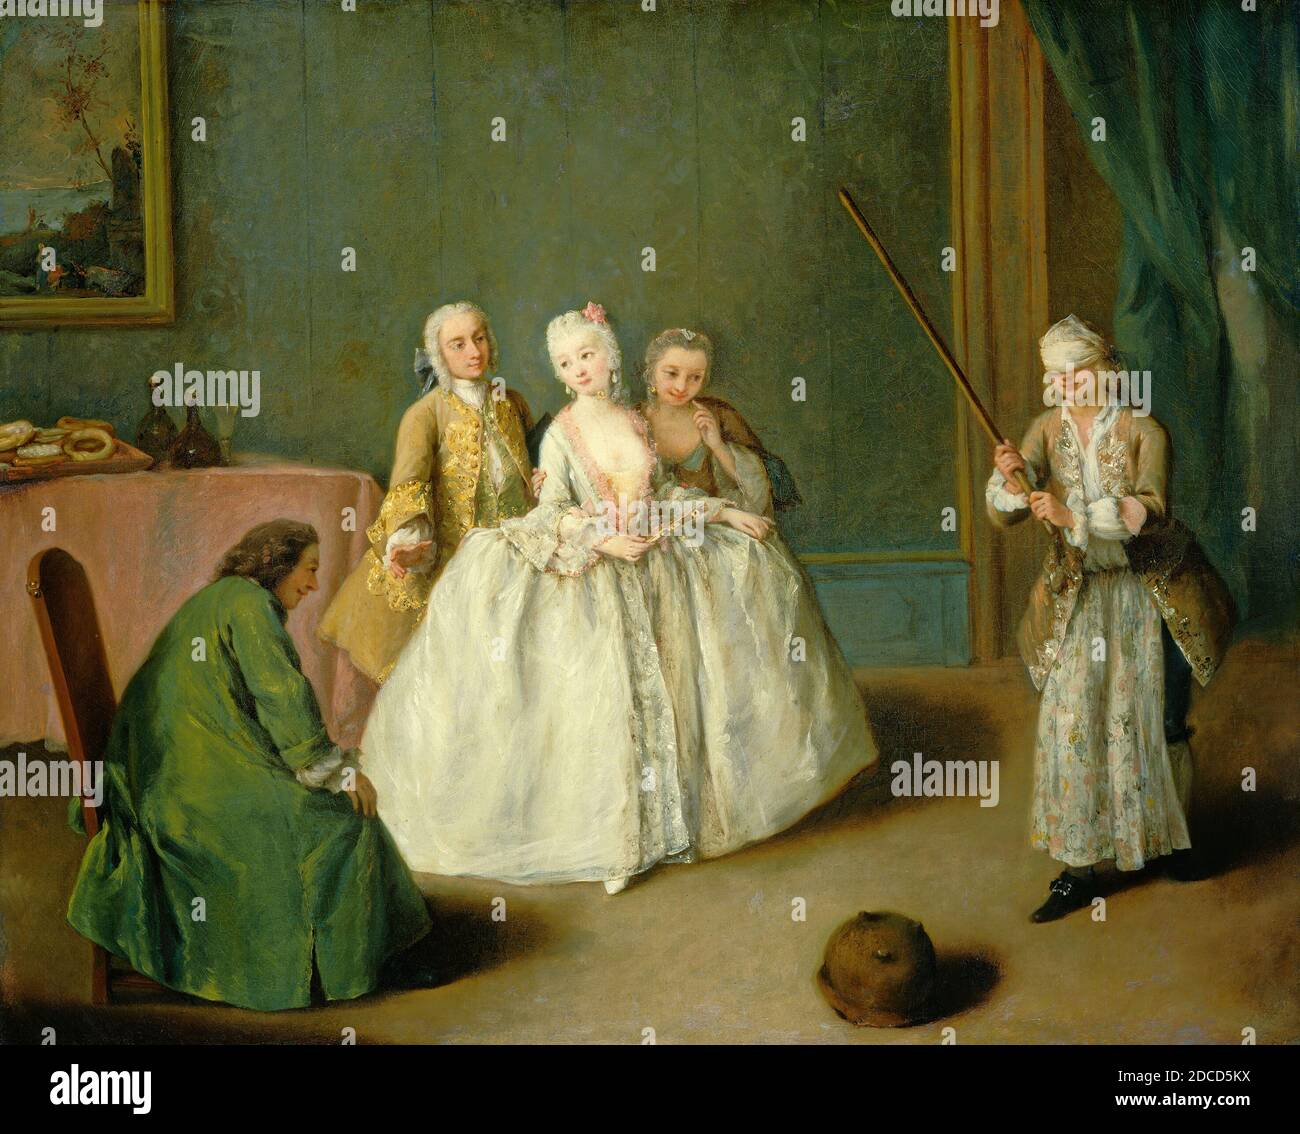 Pietro Longhi, (artist), Venetian, 1702 - 1785, The Game of the Cooking Pot, c. 1744, oil on canvas, overall: 49.9 x 61.7 cm (19 5/8 x 24 5/16 in.), framed: 65.4 x 55.9 x 3.8 cm (25 3/4 x 22 x 1 1/2 in Stock Photo